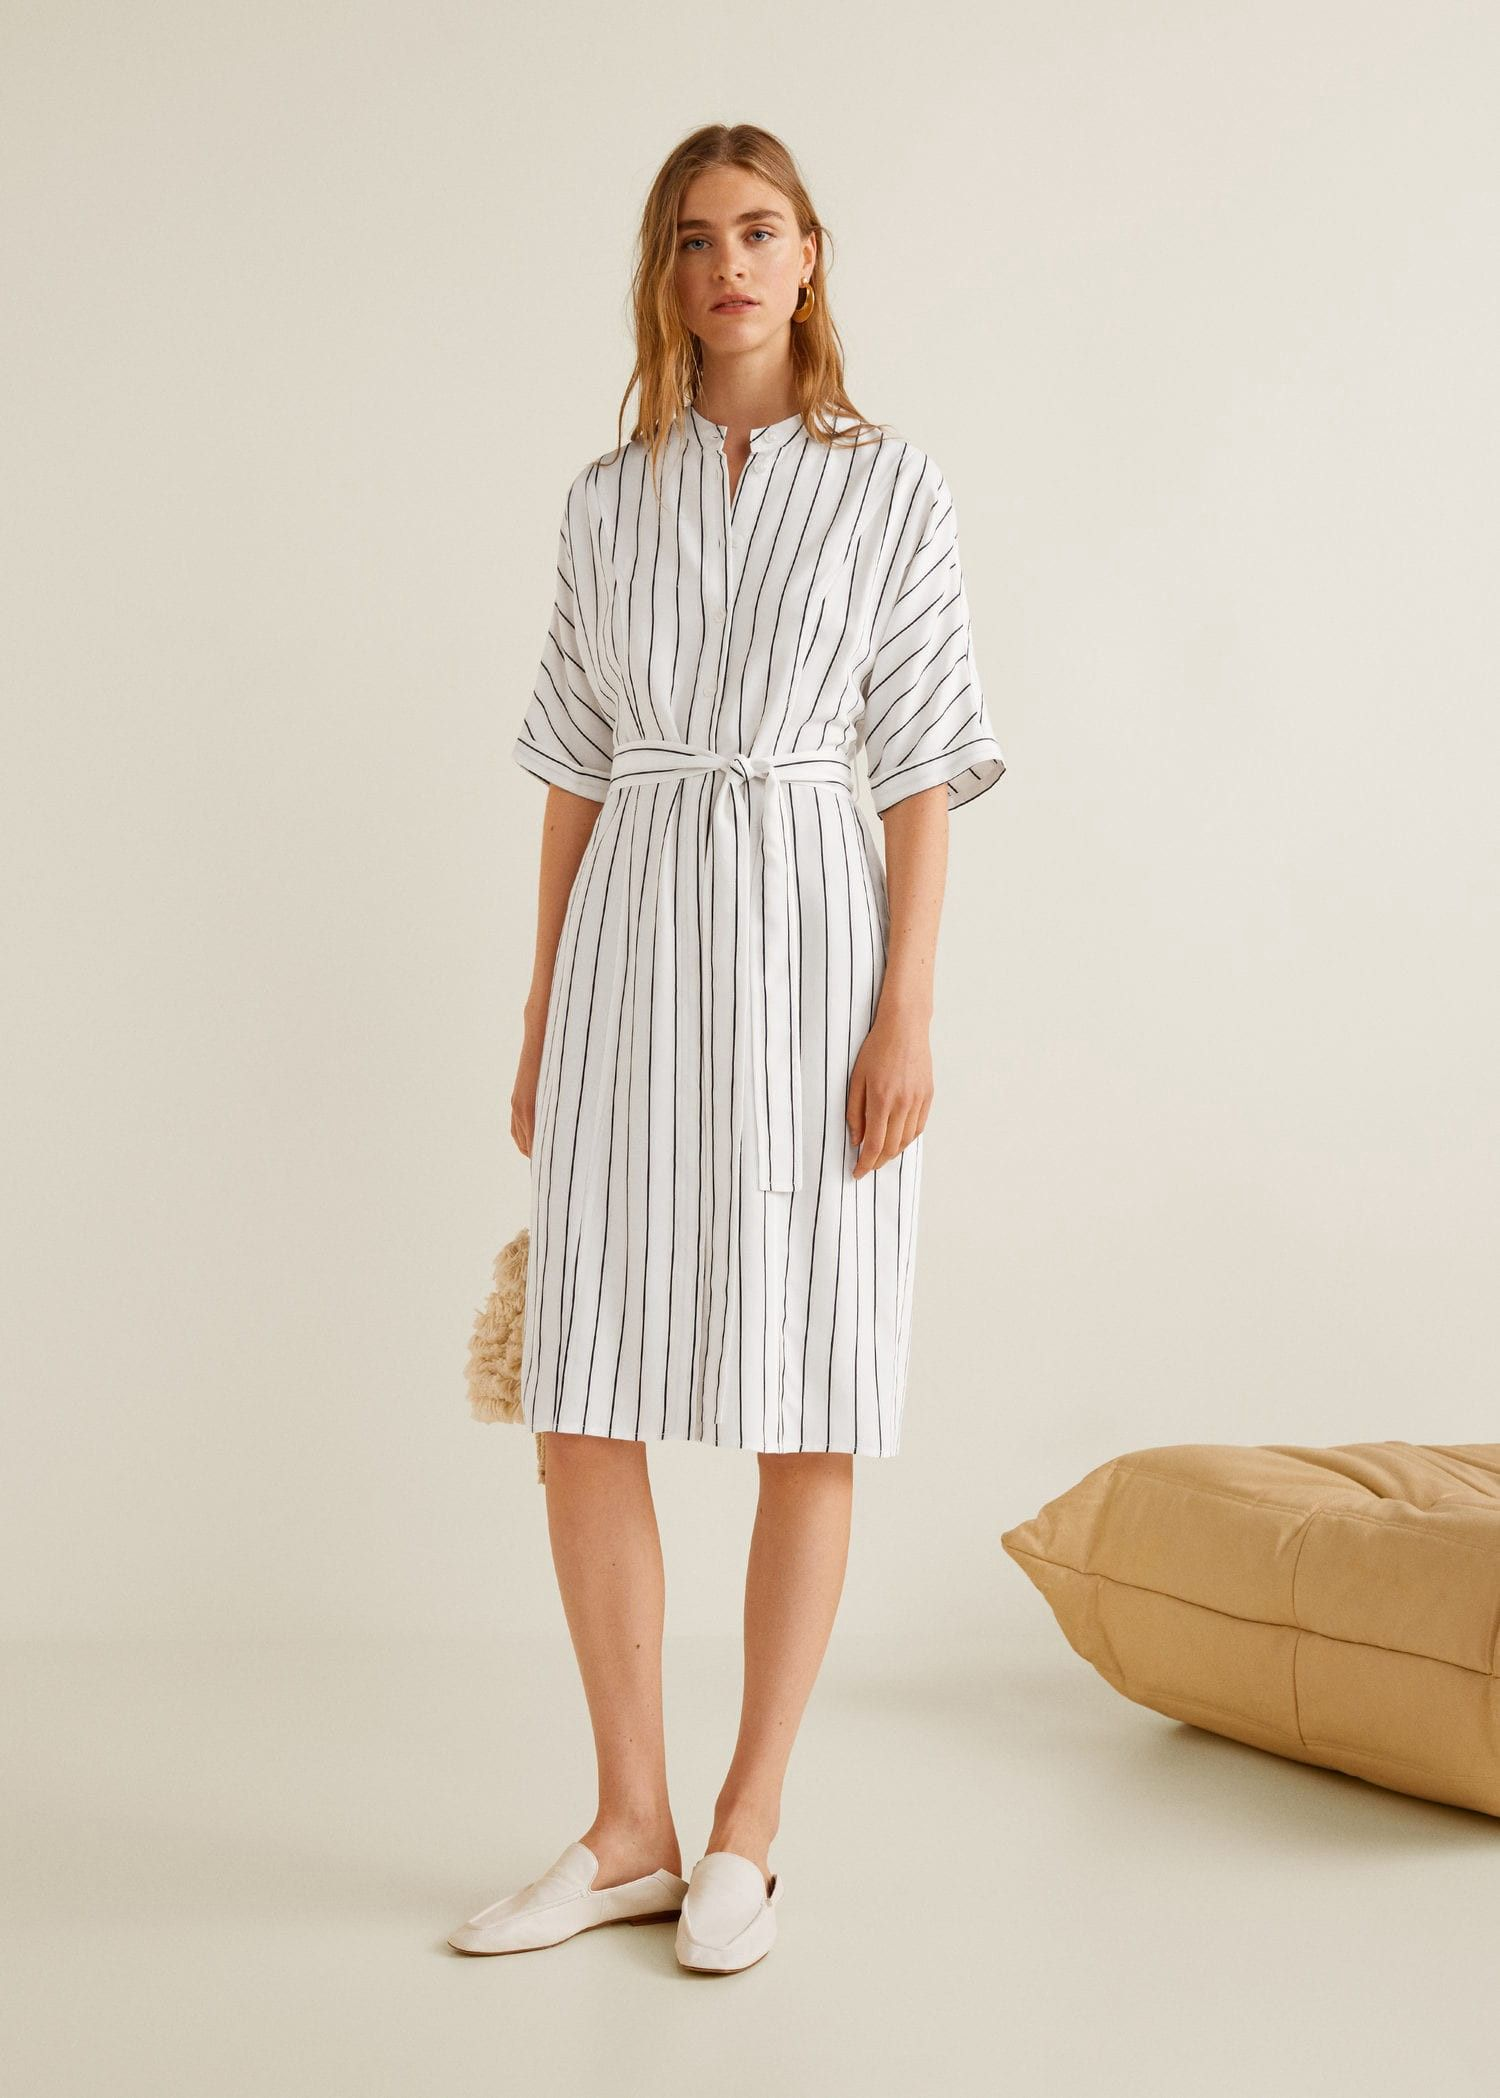 8c17b67450a4c5 Mango Striped Shirt Dress - Off White 2 in 2019